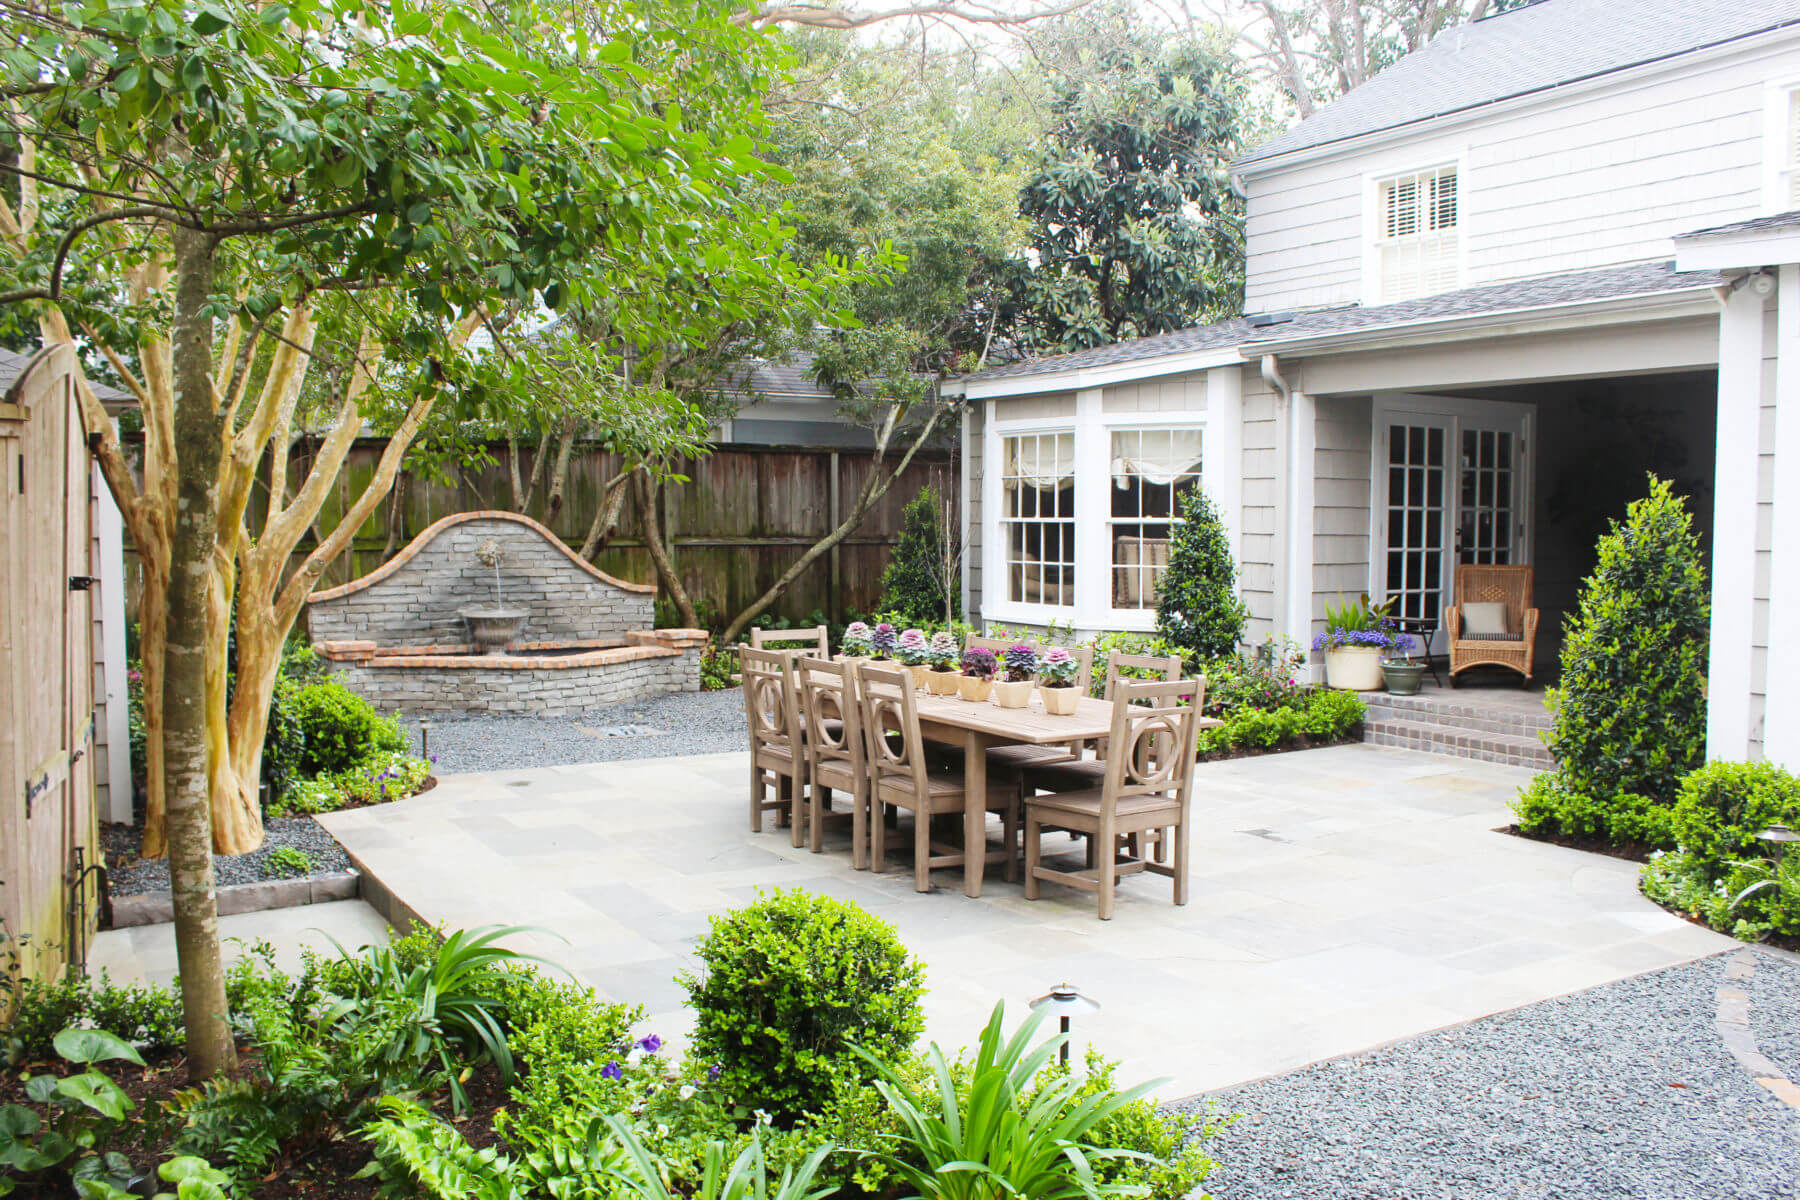 Summer Landscaping Tips with Joby Bonnot - Ranch House ... on ranch home carports, farm patio designs, ranch home modern design, double wide patio designs, ranch home front yard landscaping, stone fireplace patio designs, bi-level patio designs, ranch home pergolas, ranch home garden ideas,